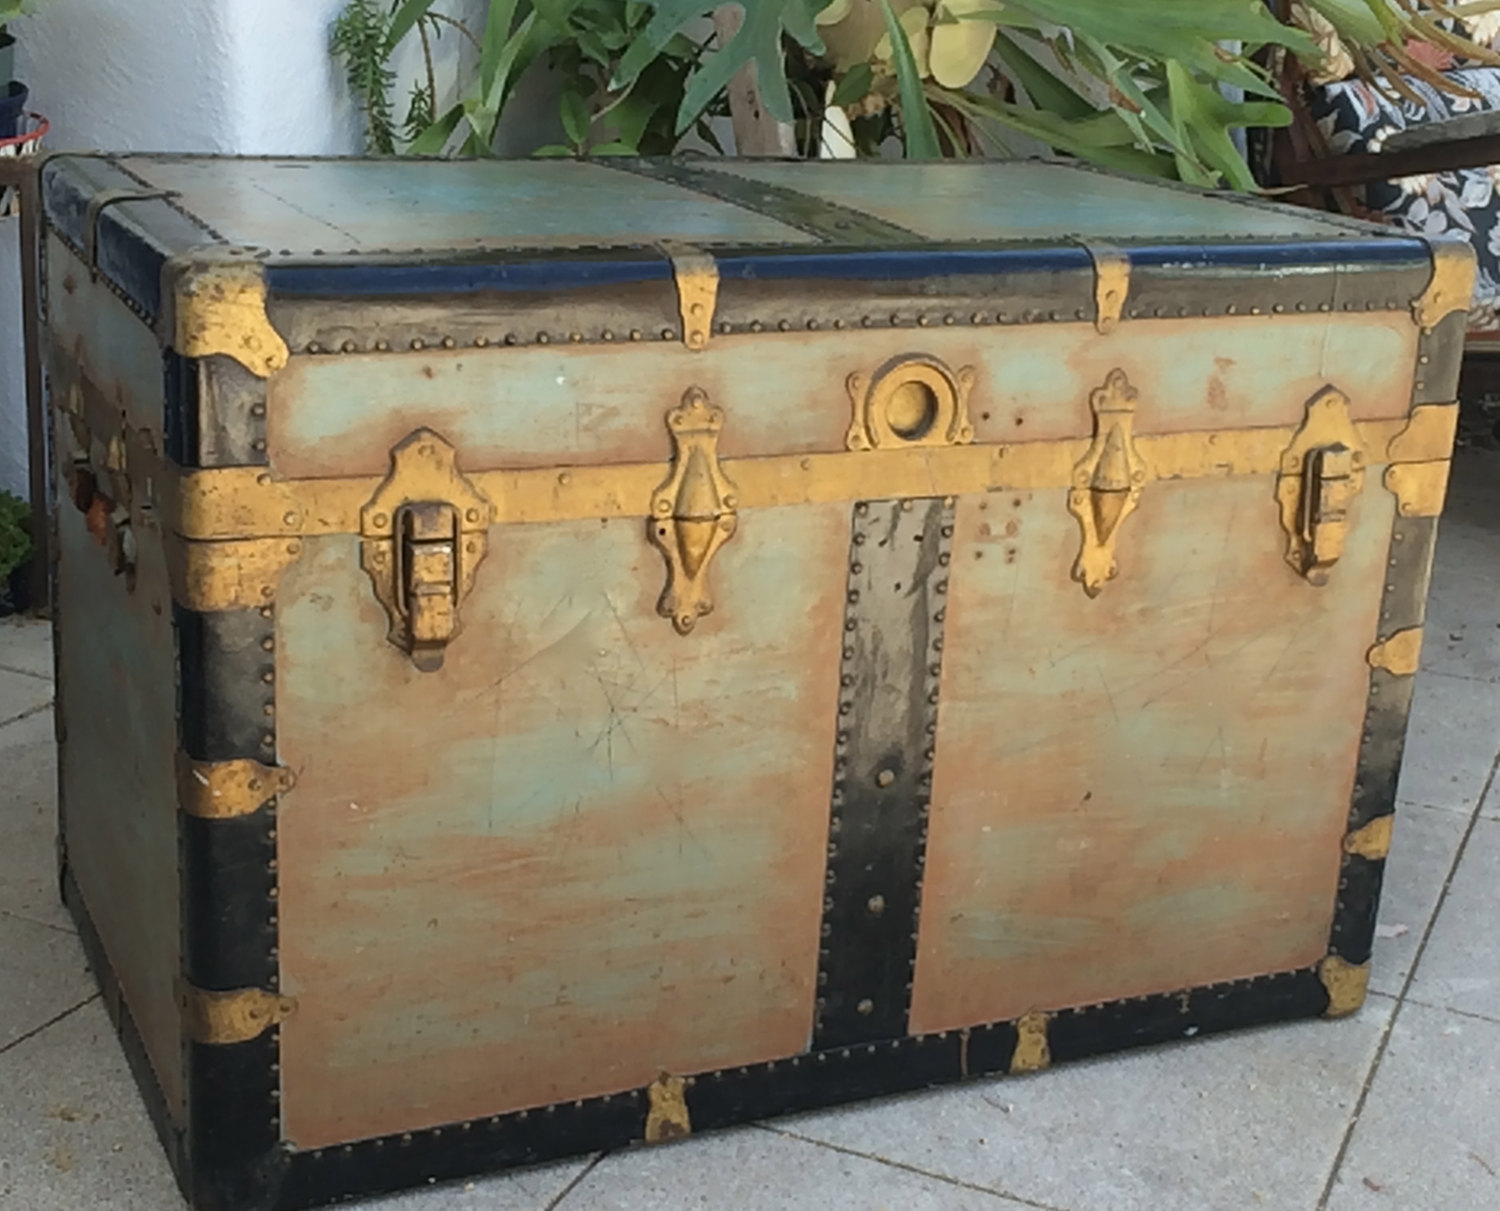 Vintage XL Steamer Trunk Coffee Table SteamPunk Storage Trunk Trunk Coffee Table Flat Top Trunk Vintage & Vintage XL Steamer Trunk Coffee Table SteamPunk Storage Trunk Trunk ...